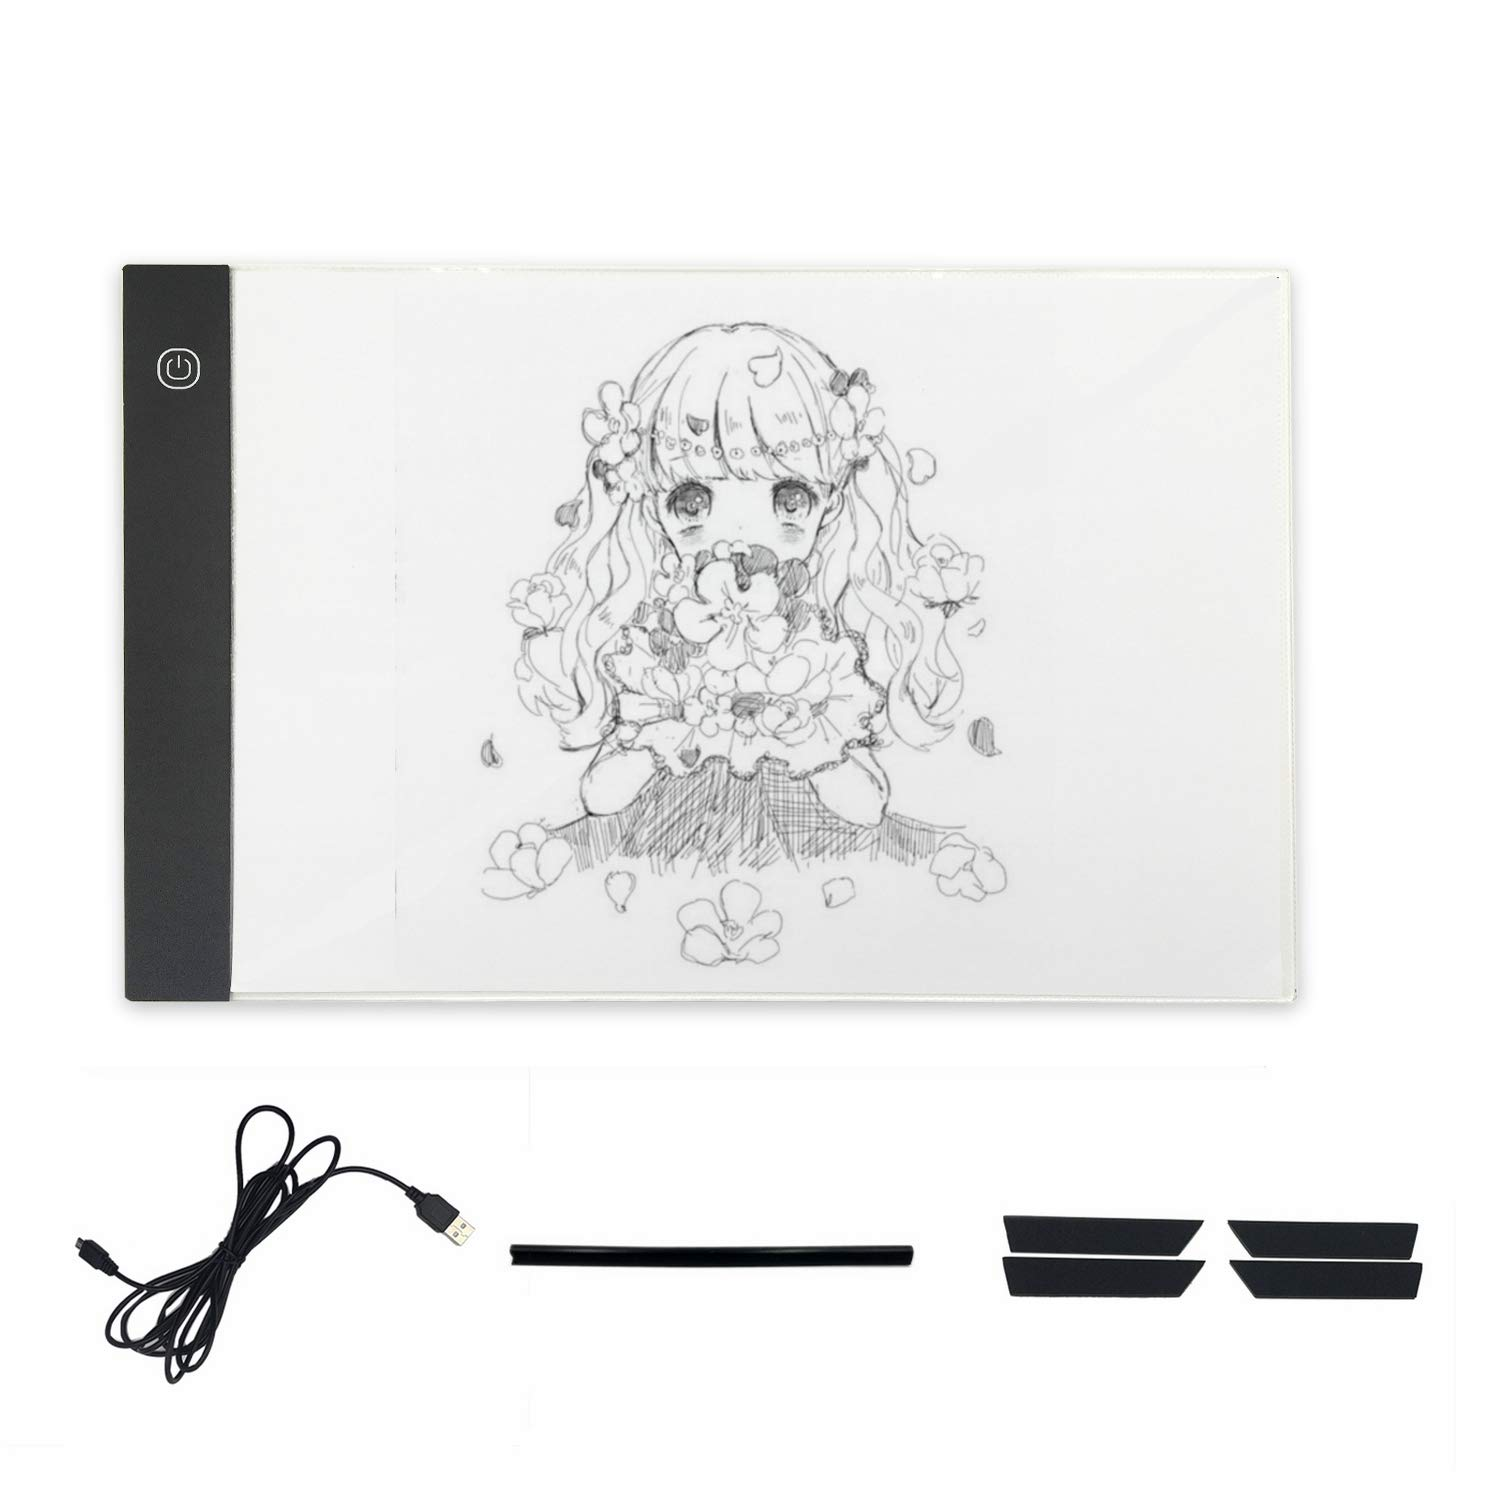 A4 LED Light Box Tracing, 3 Brightness Adjustable, Ultra-Thin Drawing Light Pad with USB Cable for Artists Animation, Design, Sketching, Drawing Lumsburry